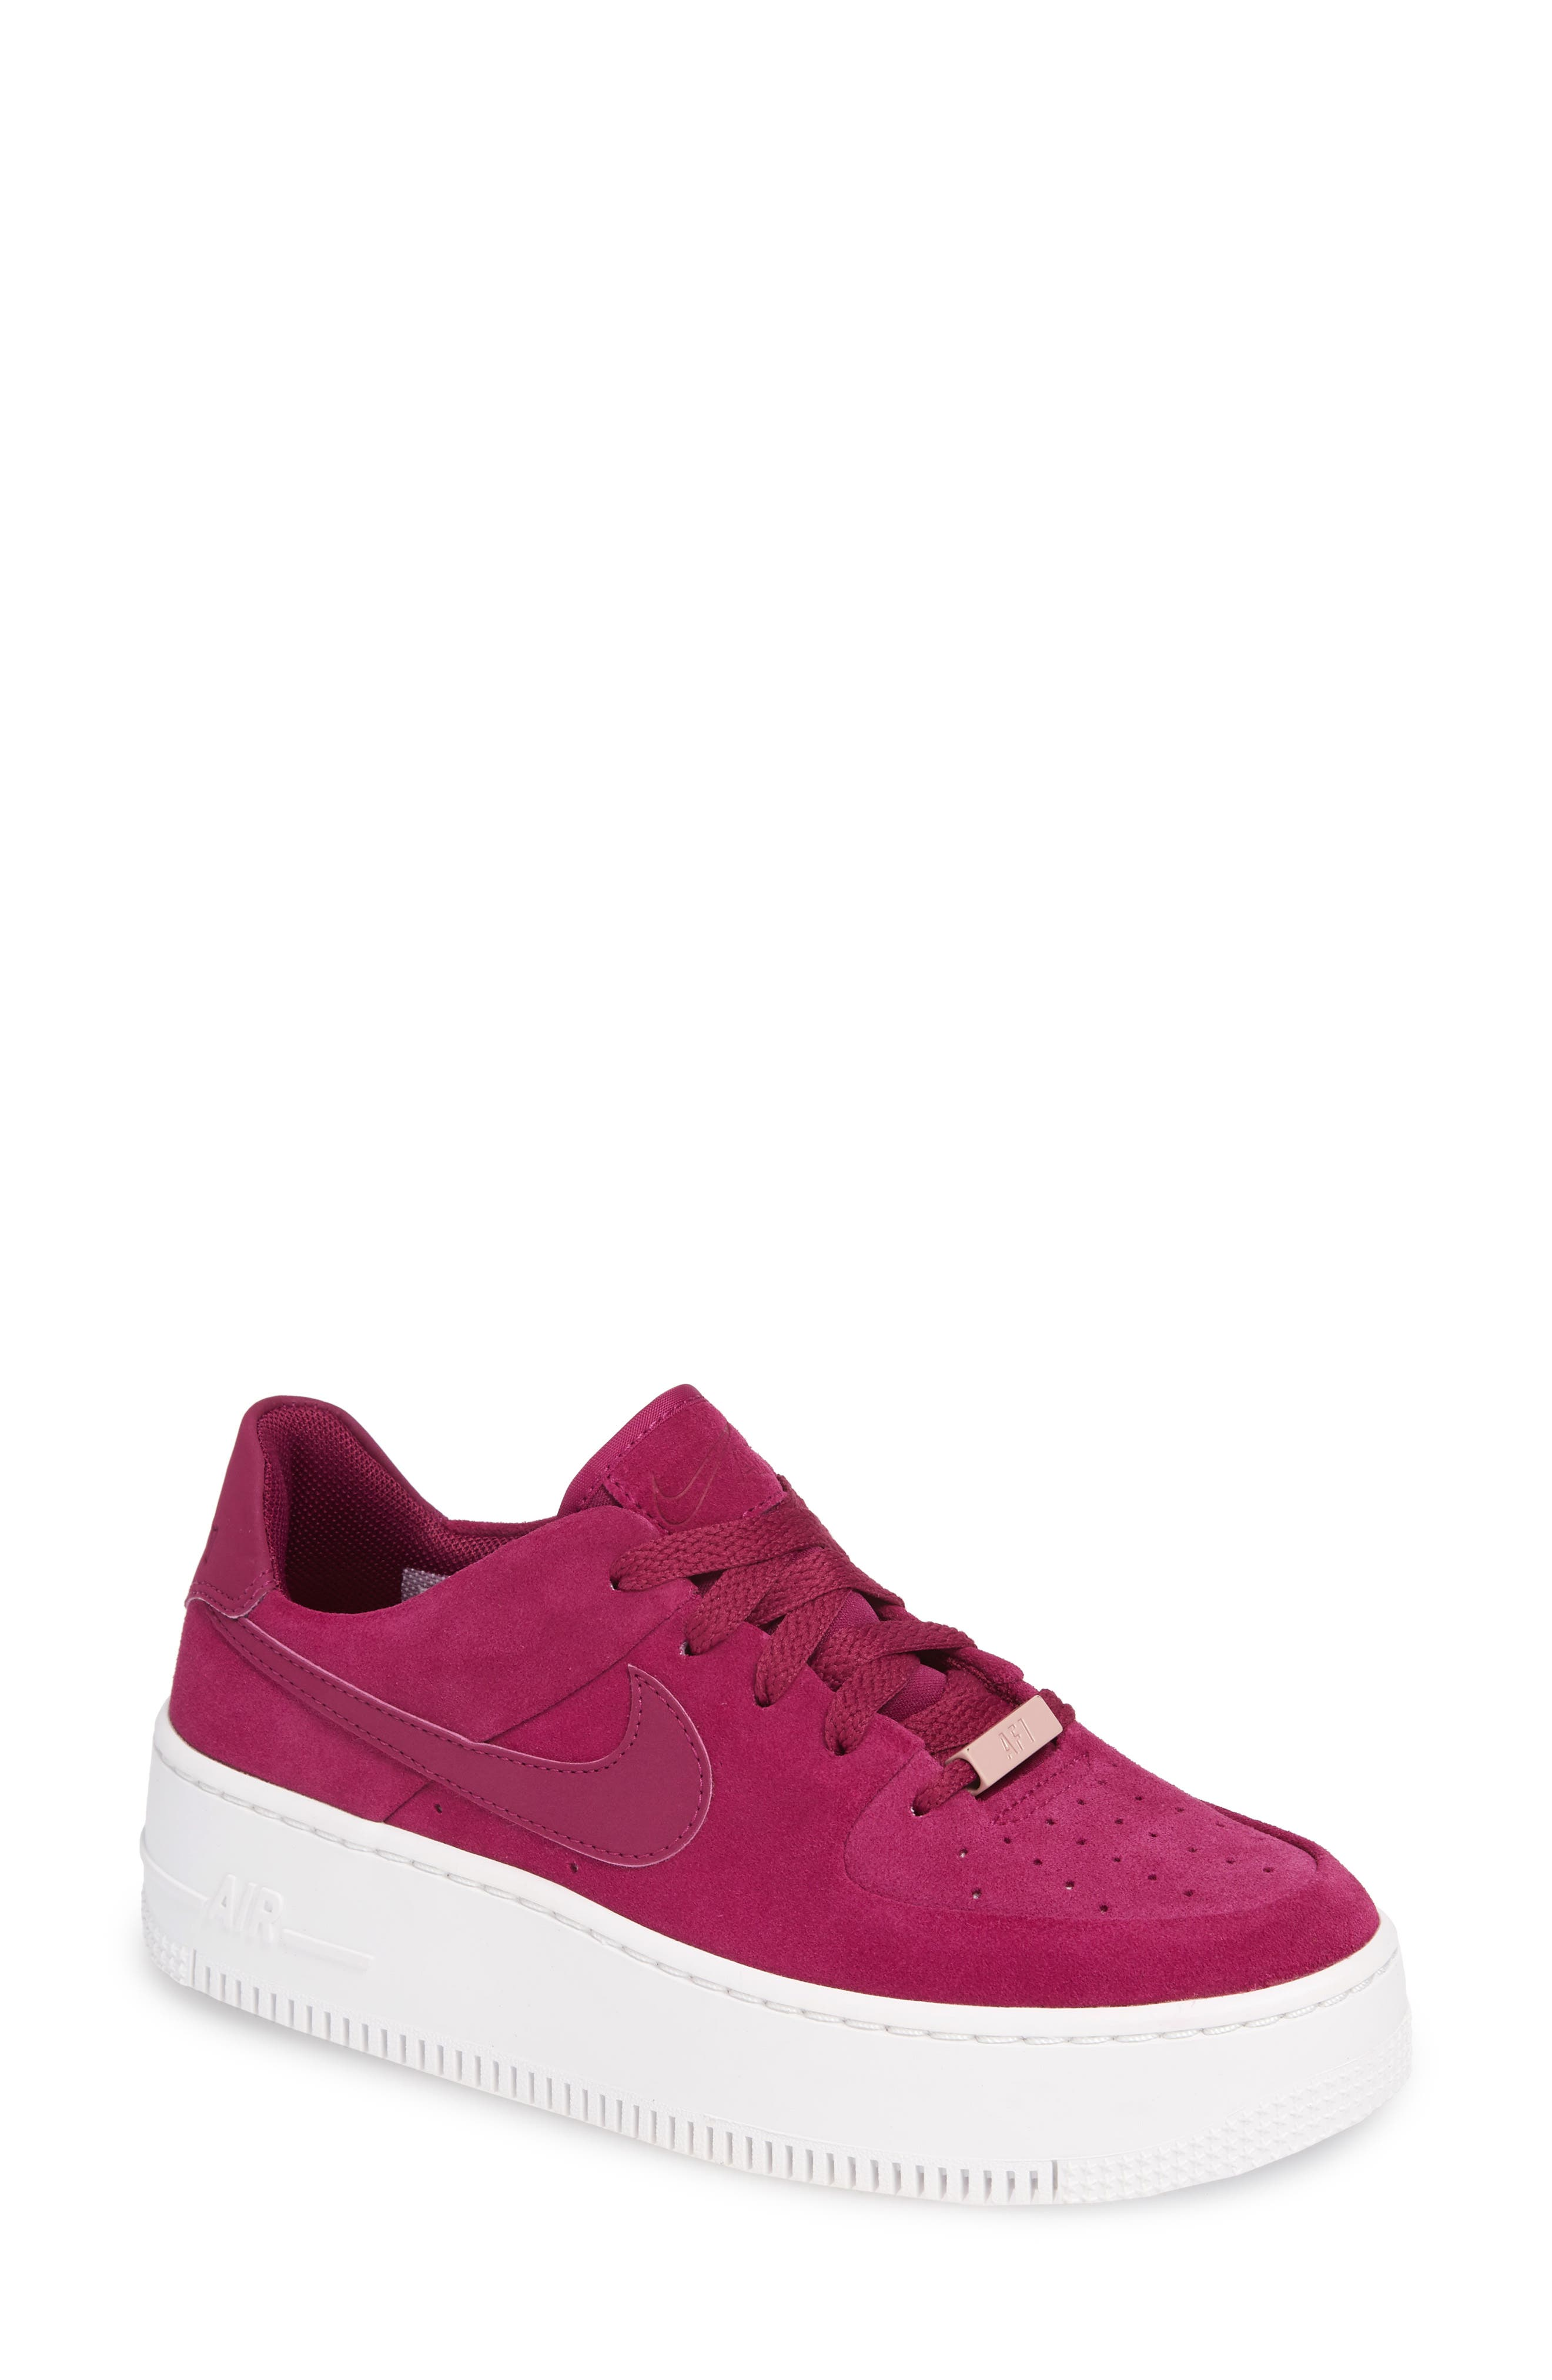 NIKE Air Force 1 Sage Low Platform Sneaker, Main, color, TRUE BERRY/ PLUM CHALK